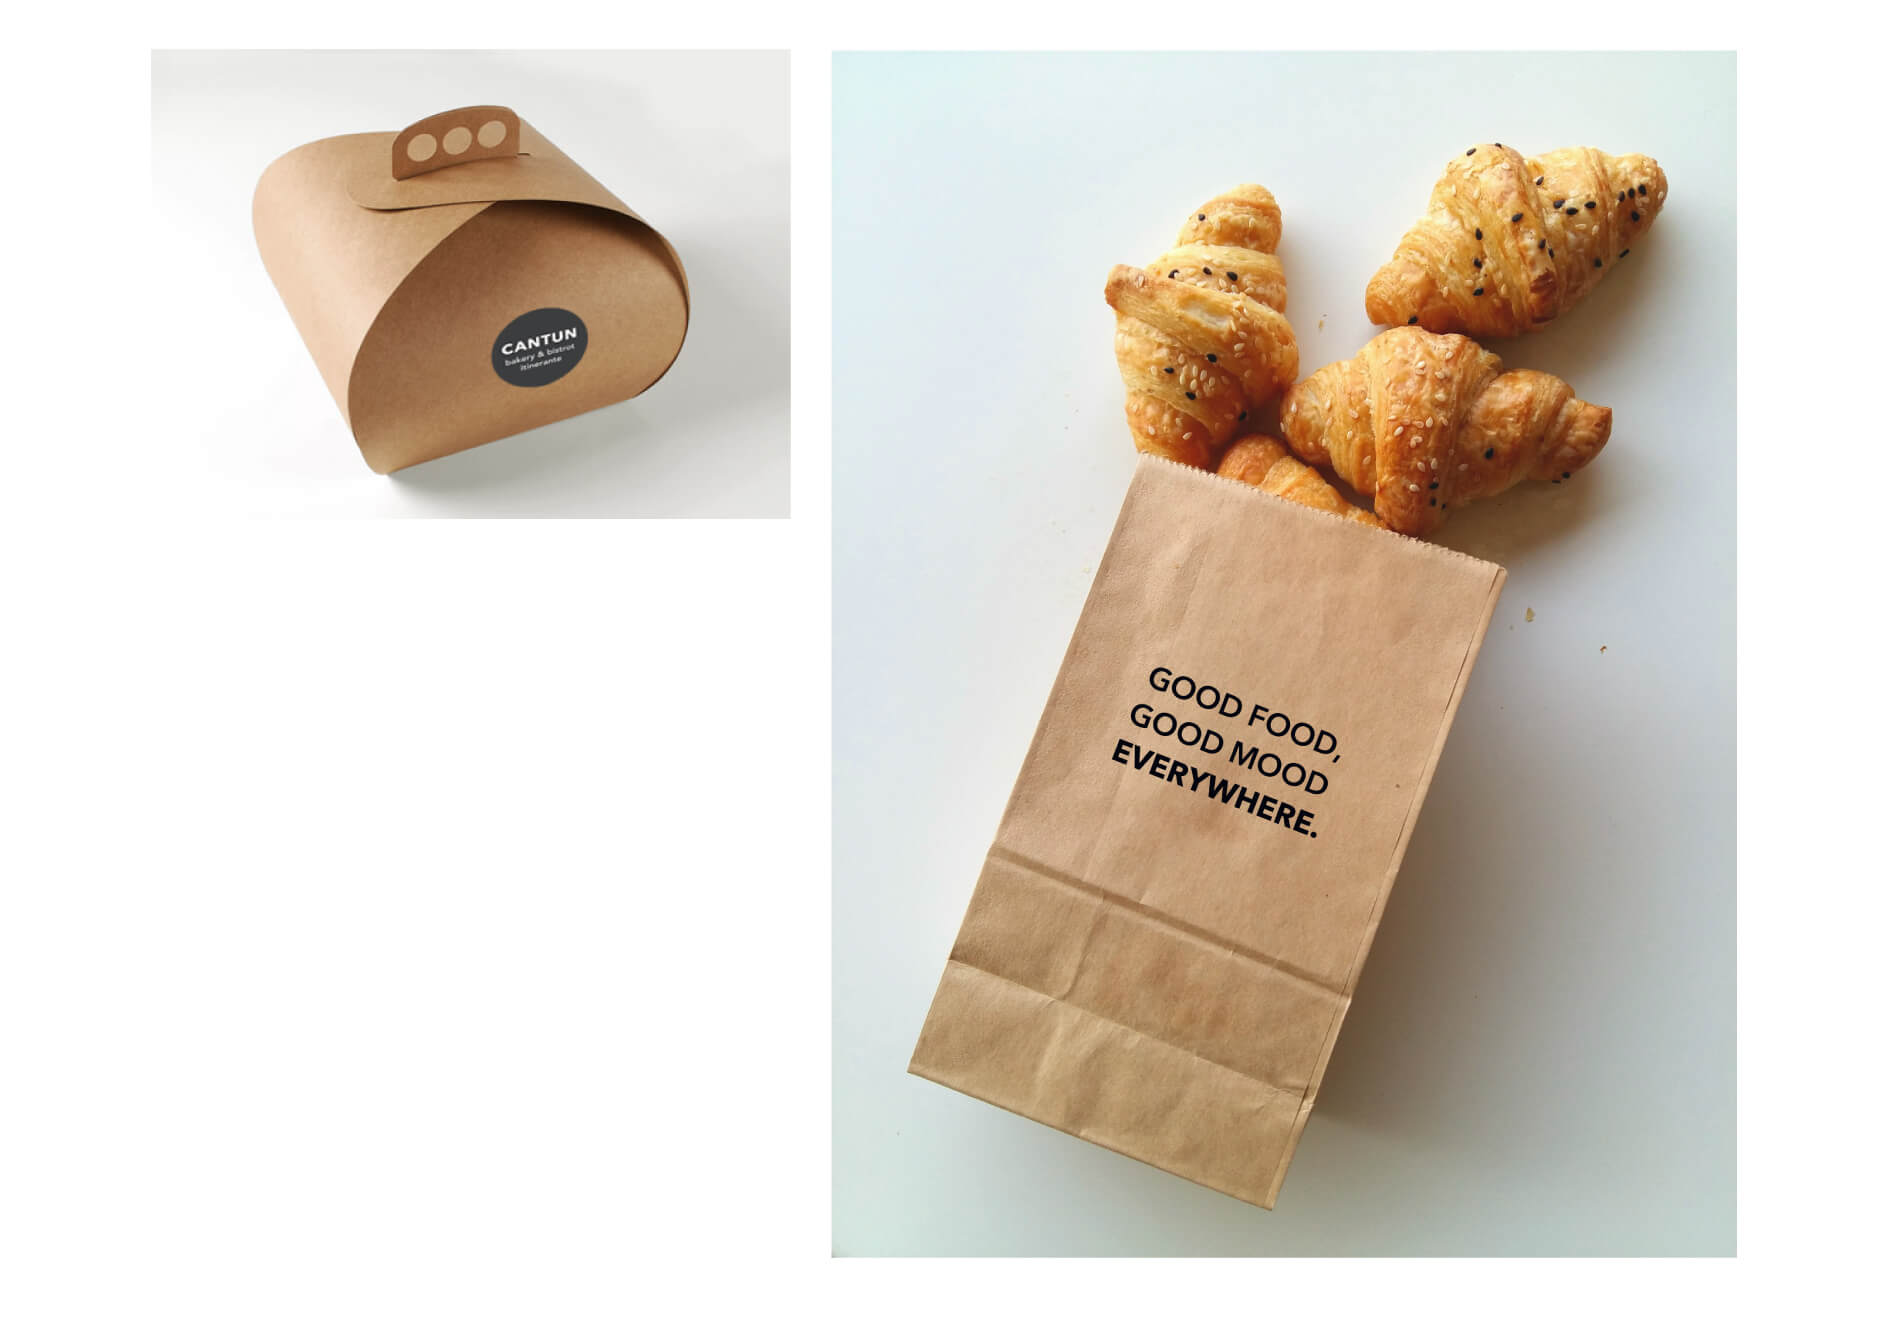 06-Cantun_bakery_bistrot-packaging